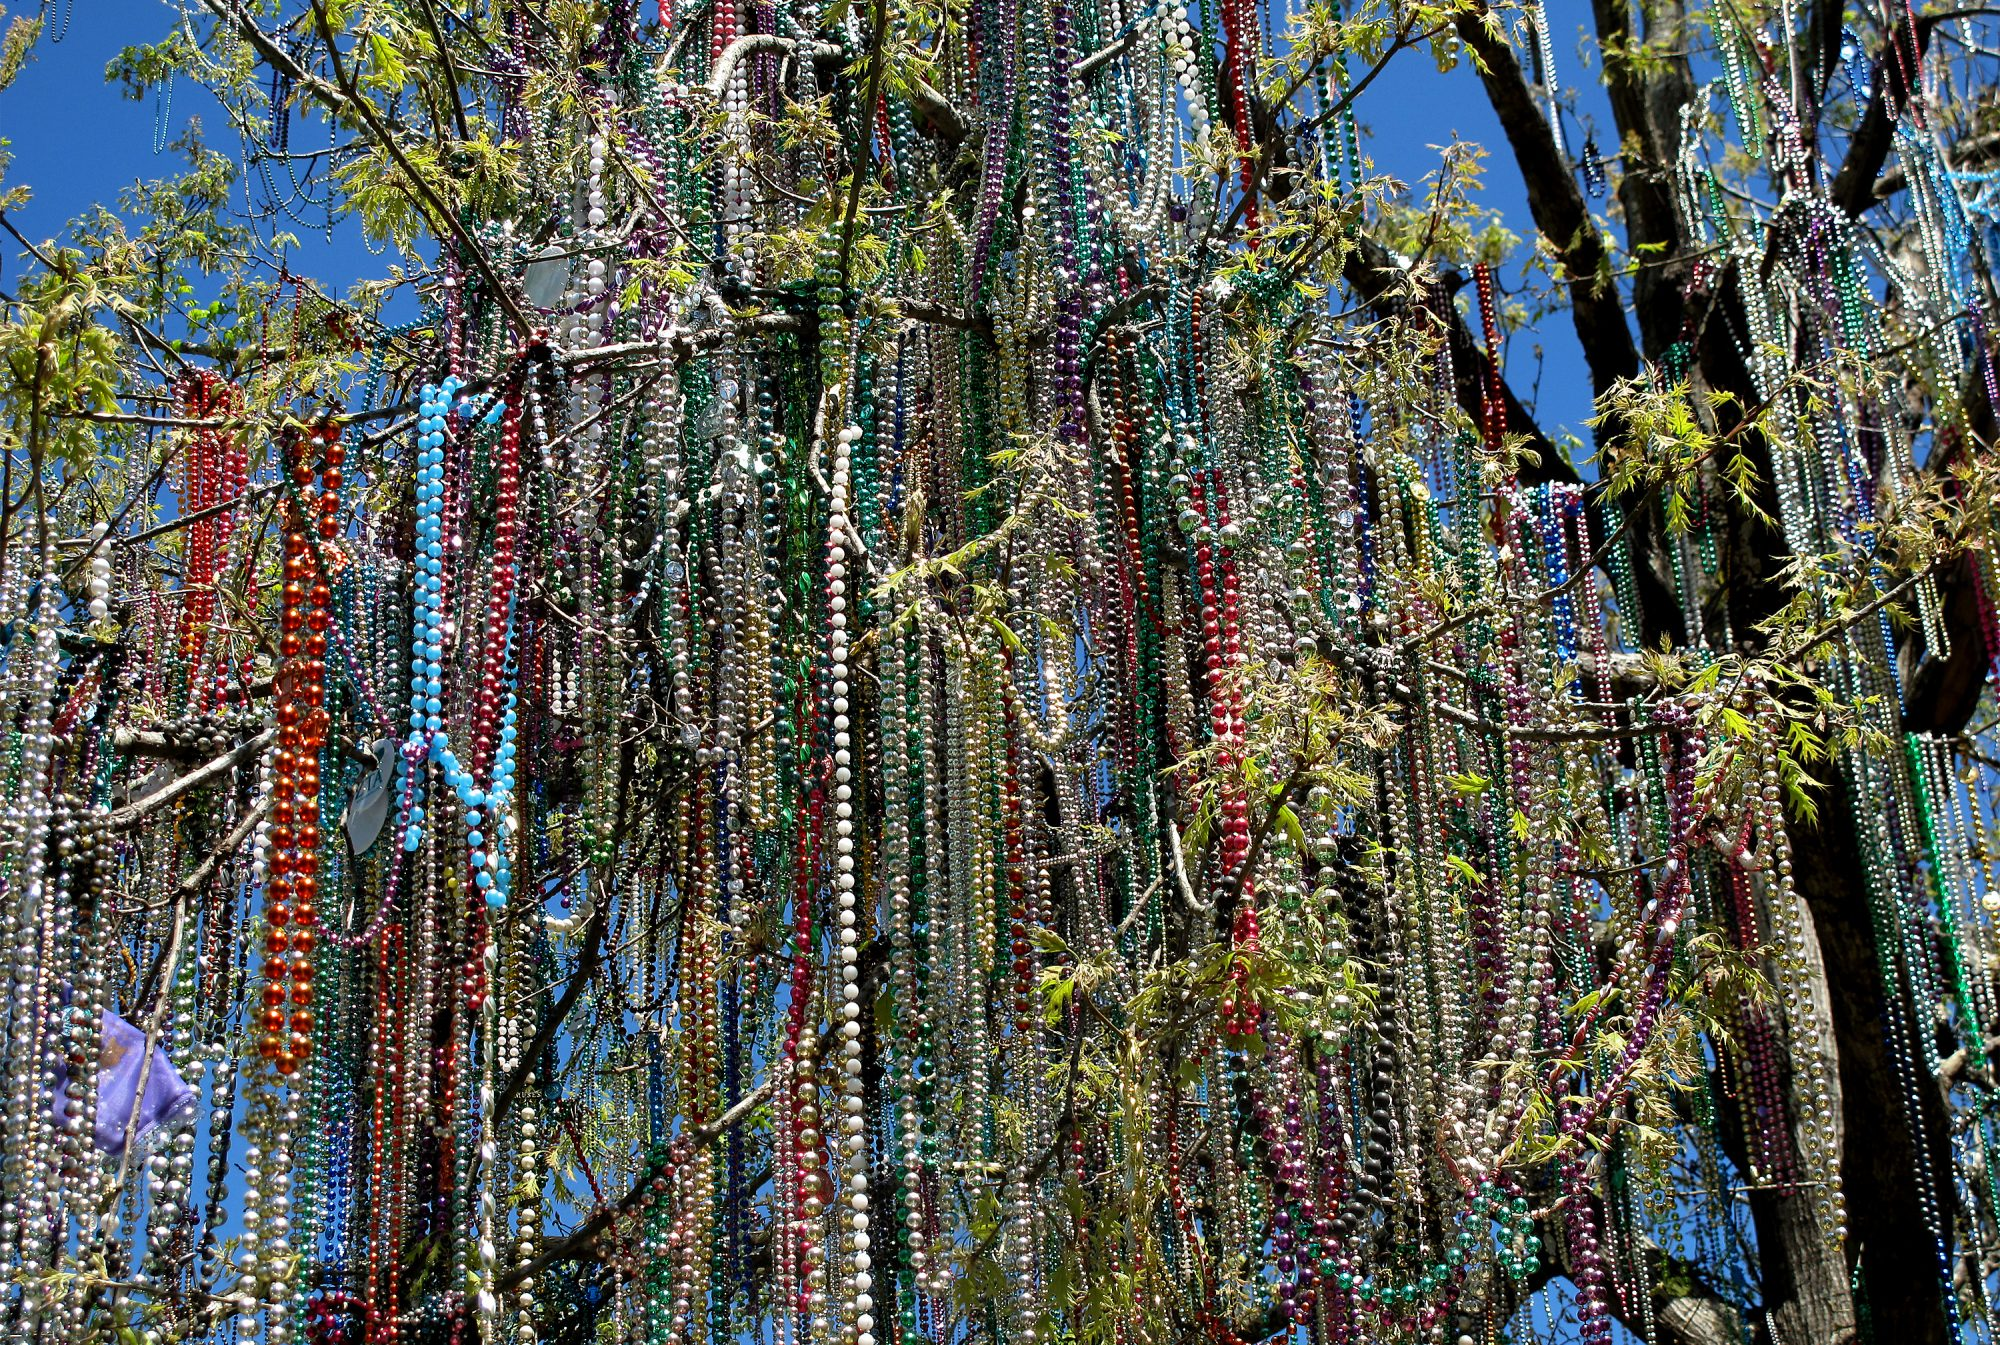 Tulane University's Iconic Bead Tree is No More